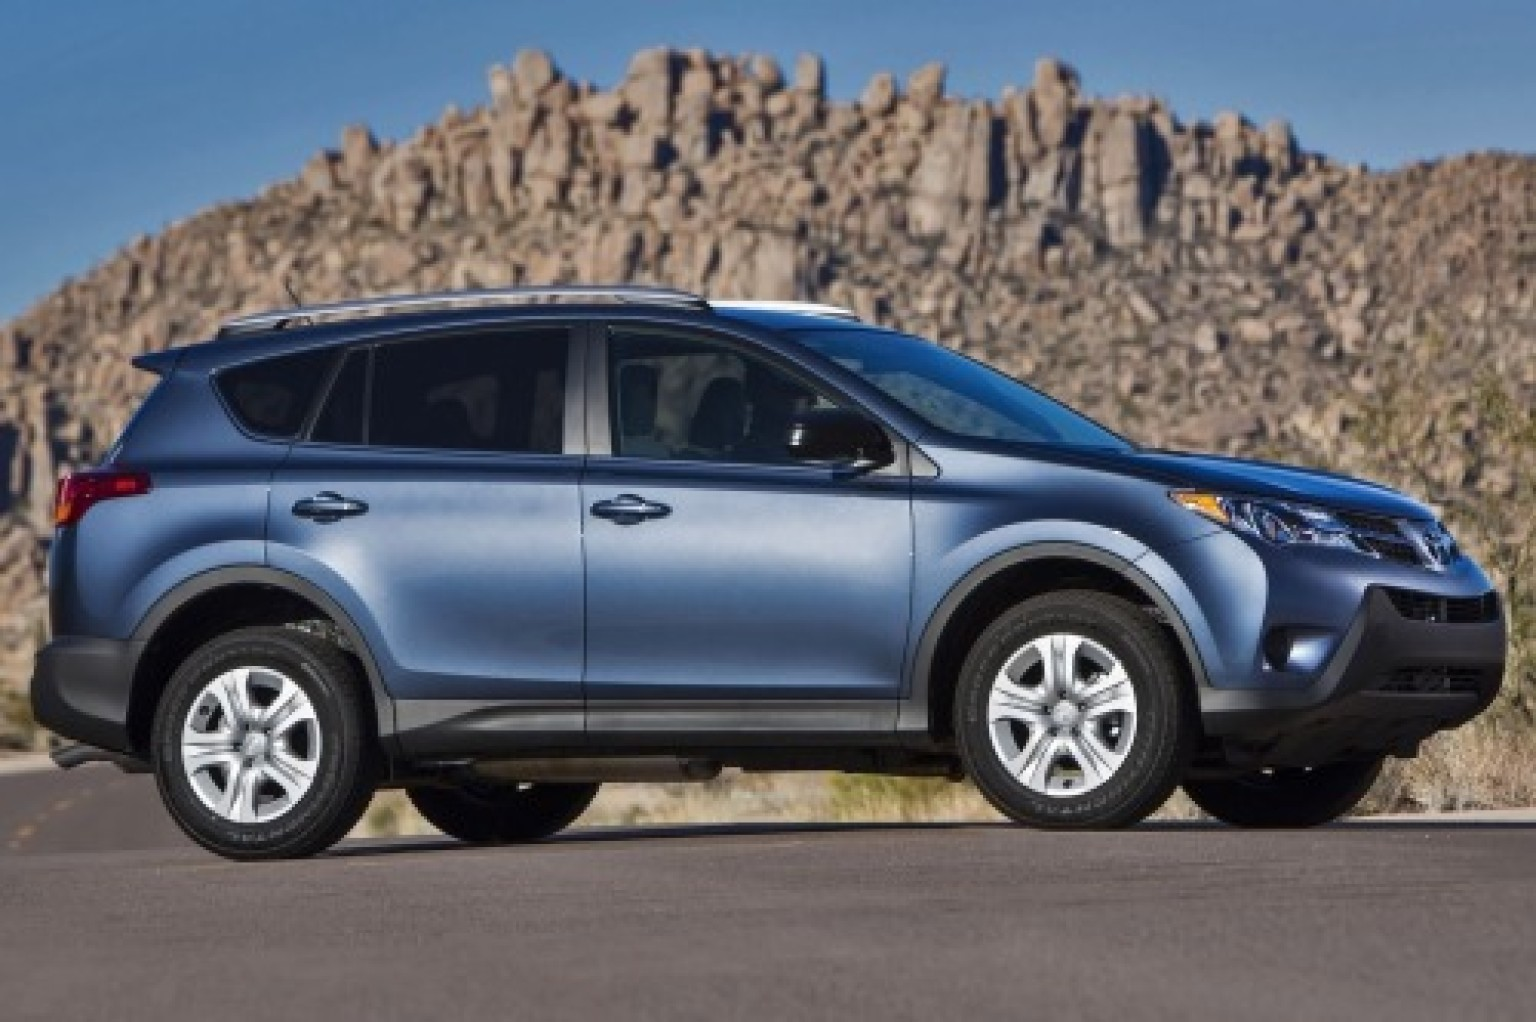 toyota rav4 prueba de manejo la suv por excelencia huffpost. Black Bedroom Furniture Sets. Home Design Ideas